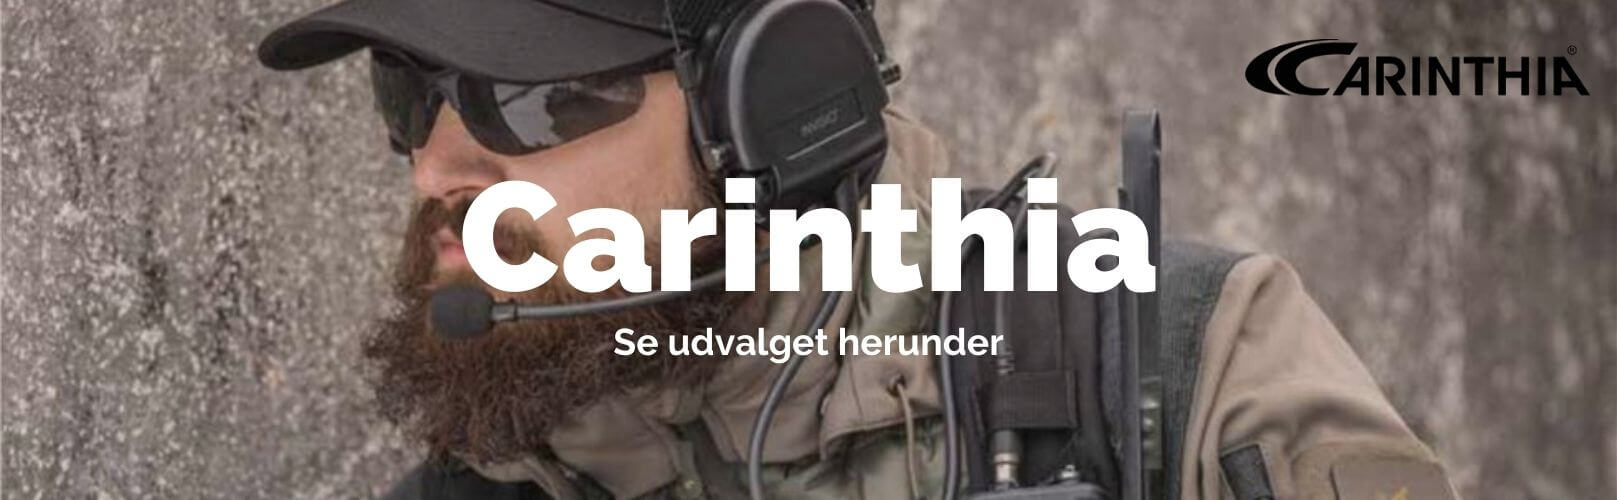 Carinthia outdoor banner